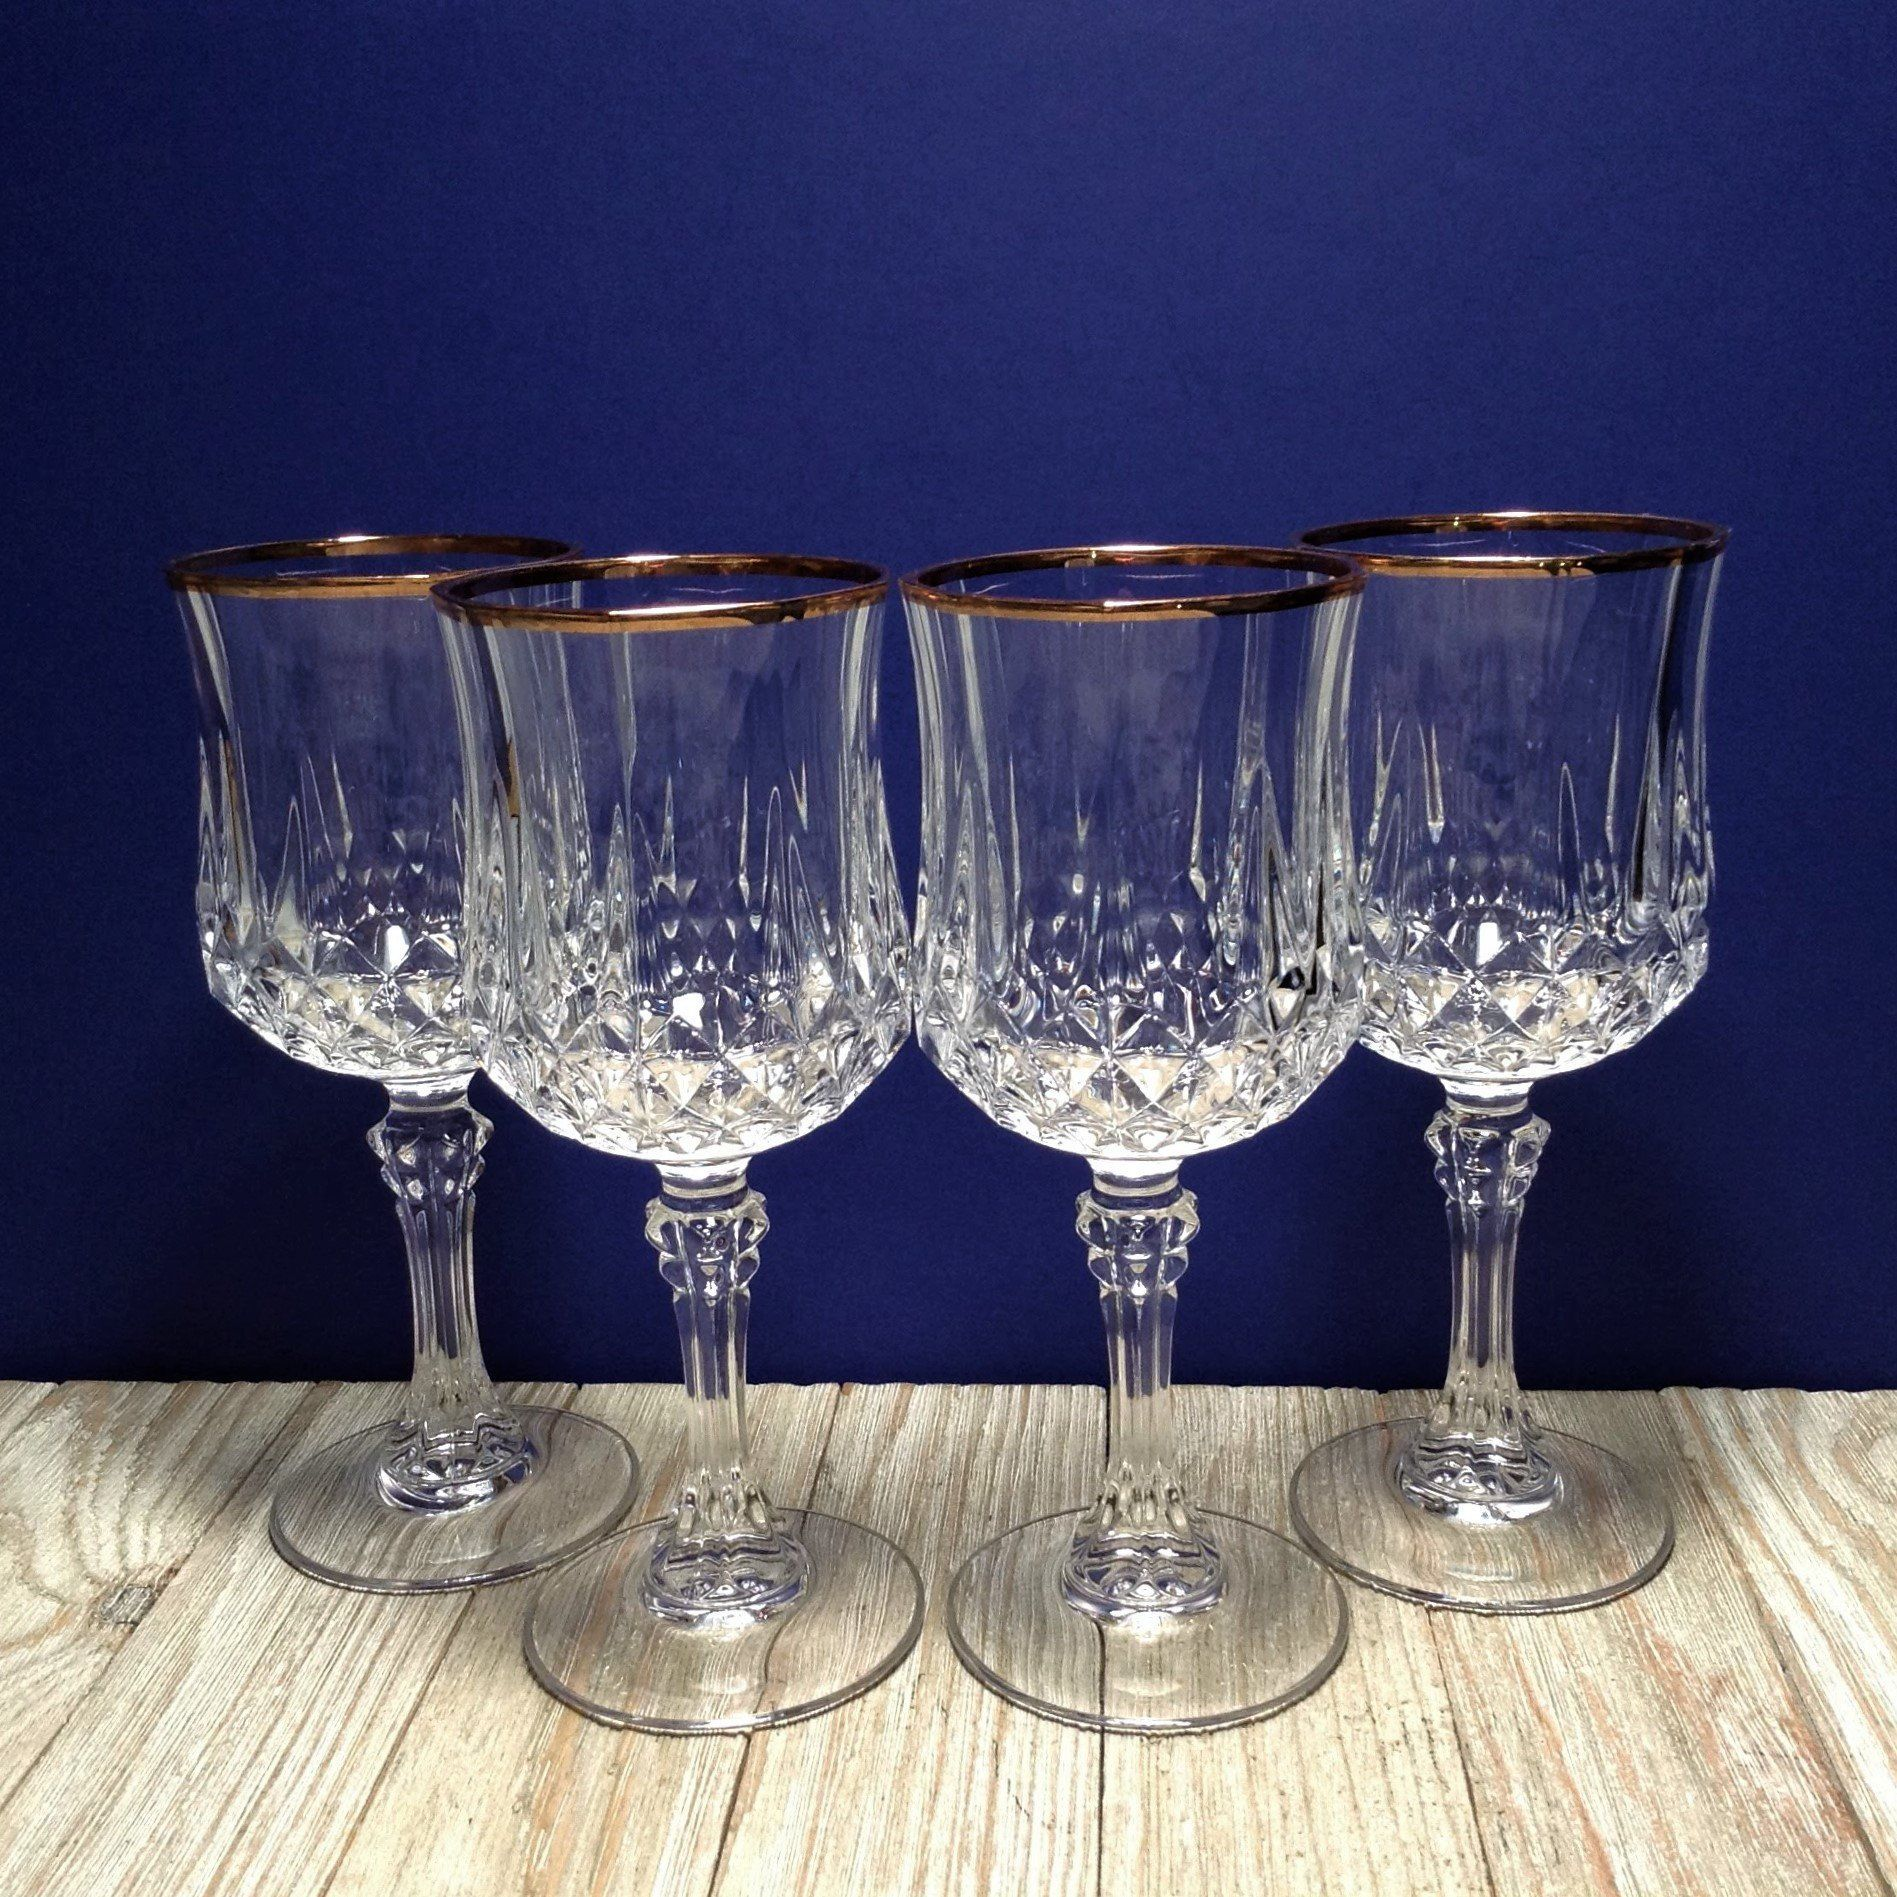 Depression glass price guide and pattern identification